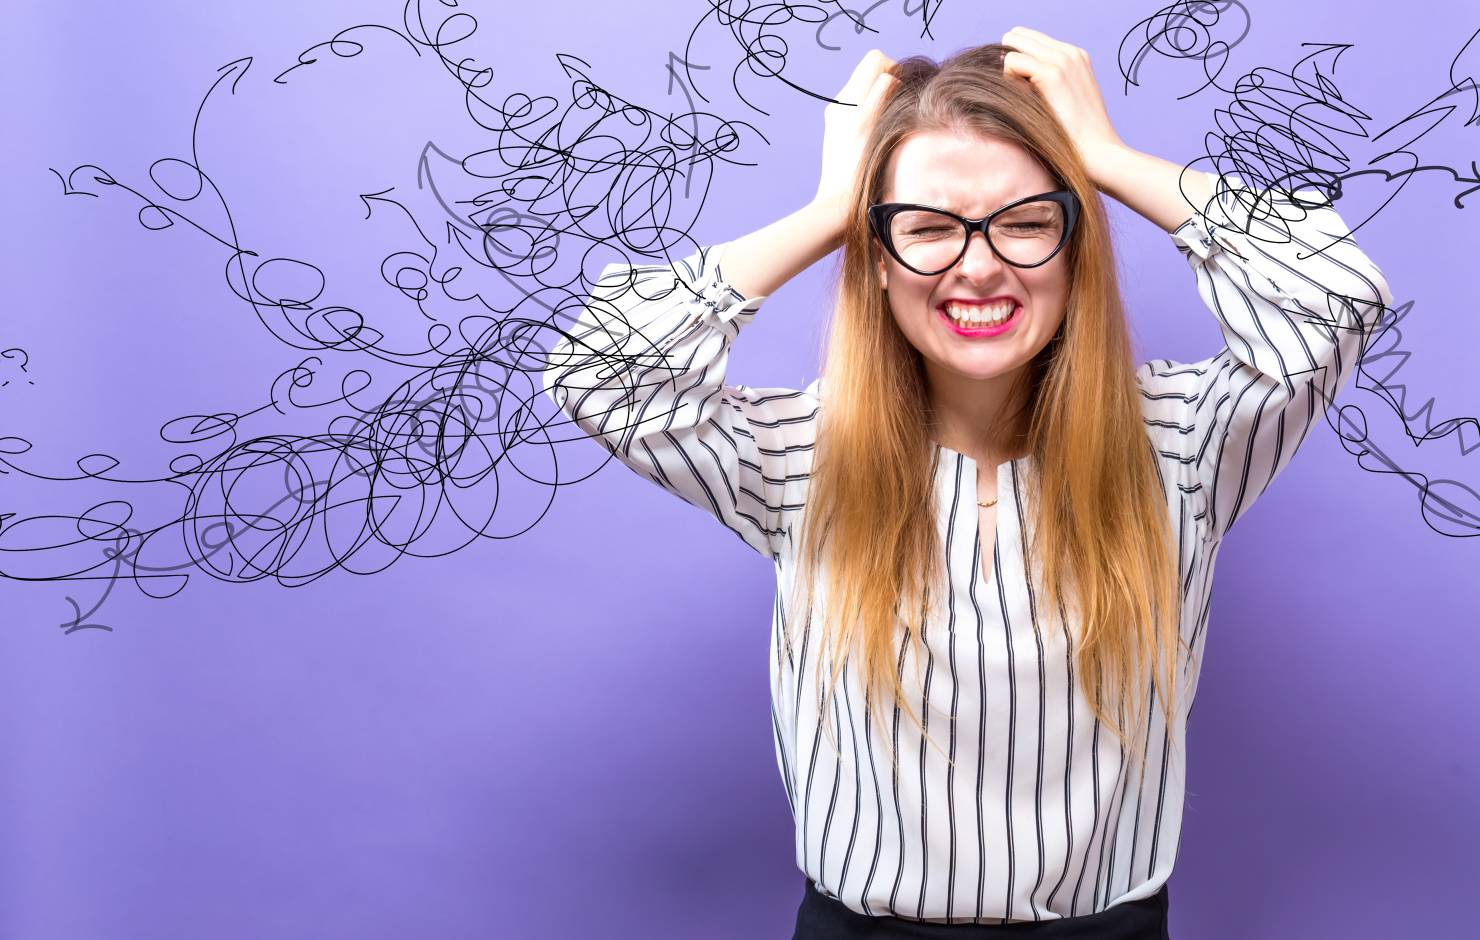 frustrated woman on purple background